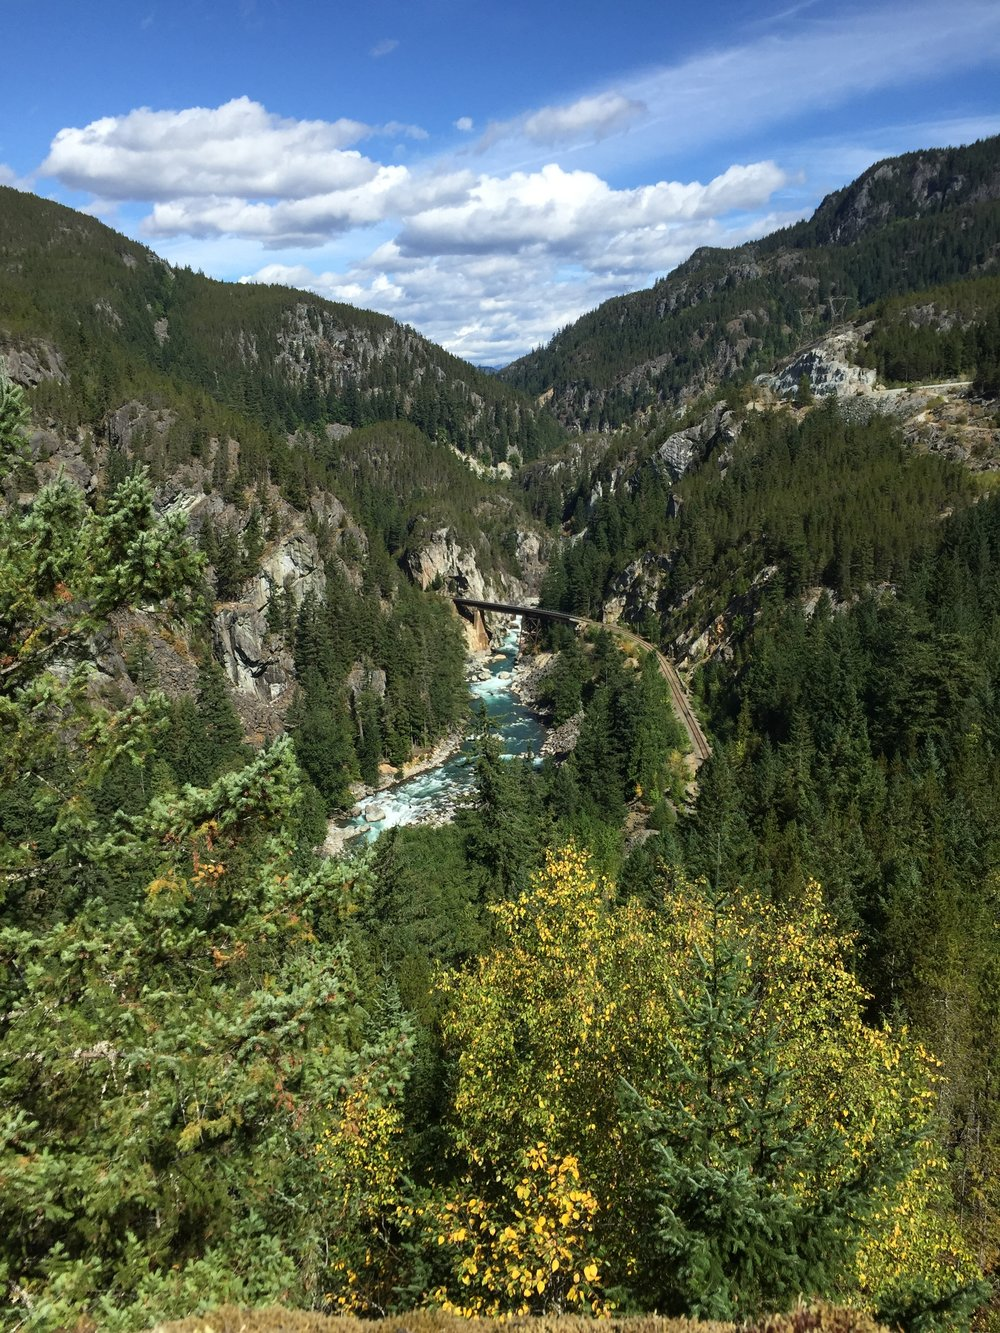 The view down to the Cheakamus.